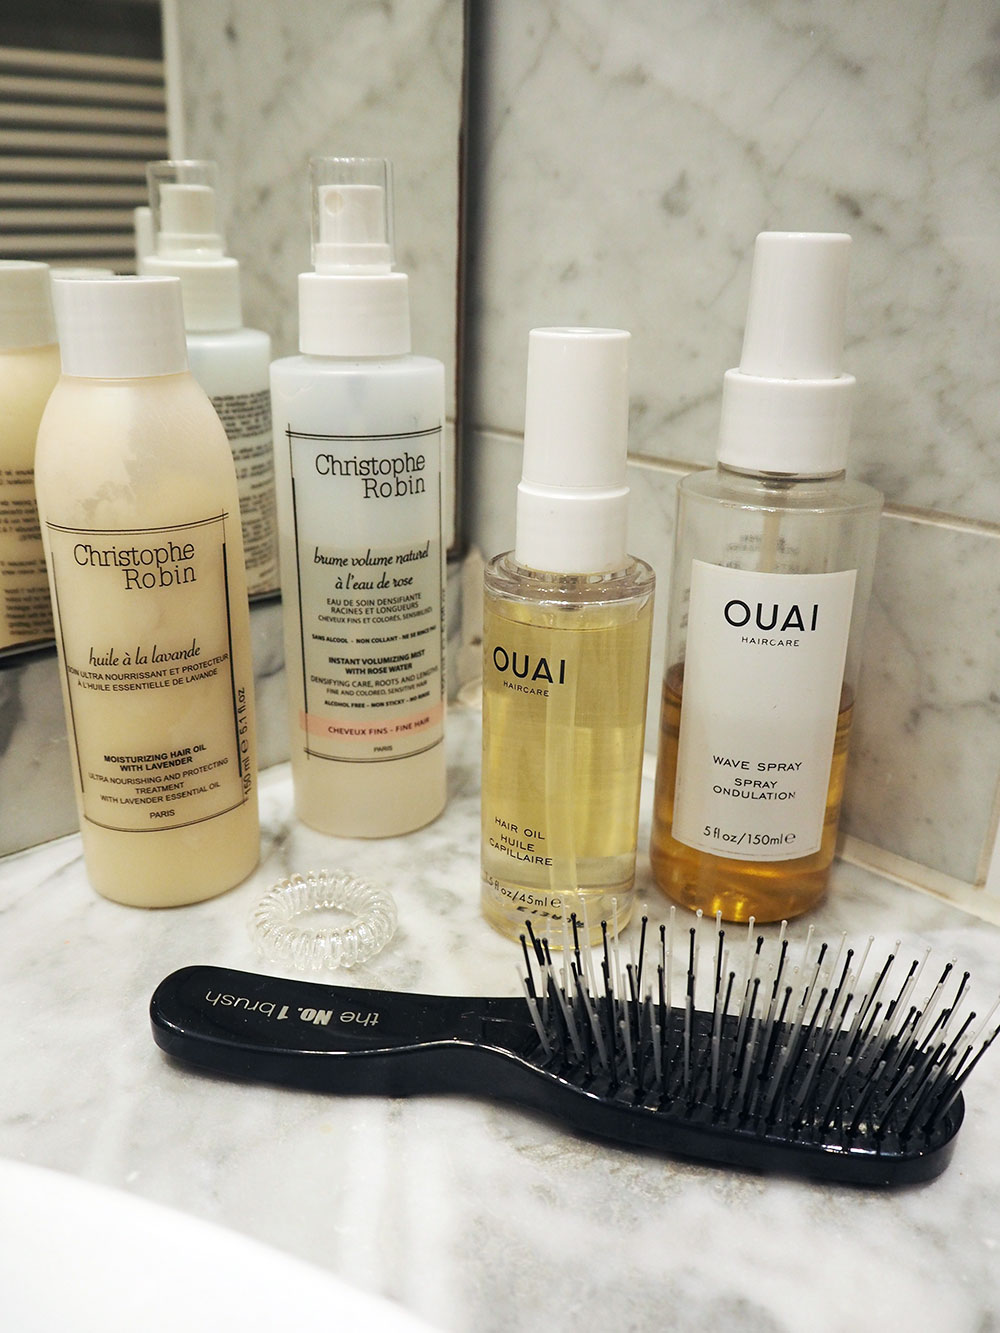 RosyCheeks-Hair-care-The-Ouai-Christophe-Robin-Brush